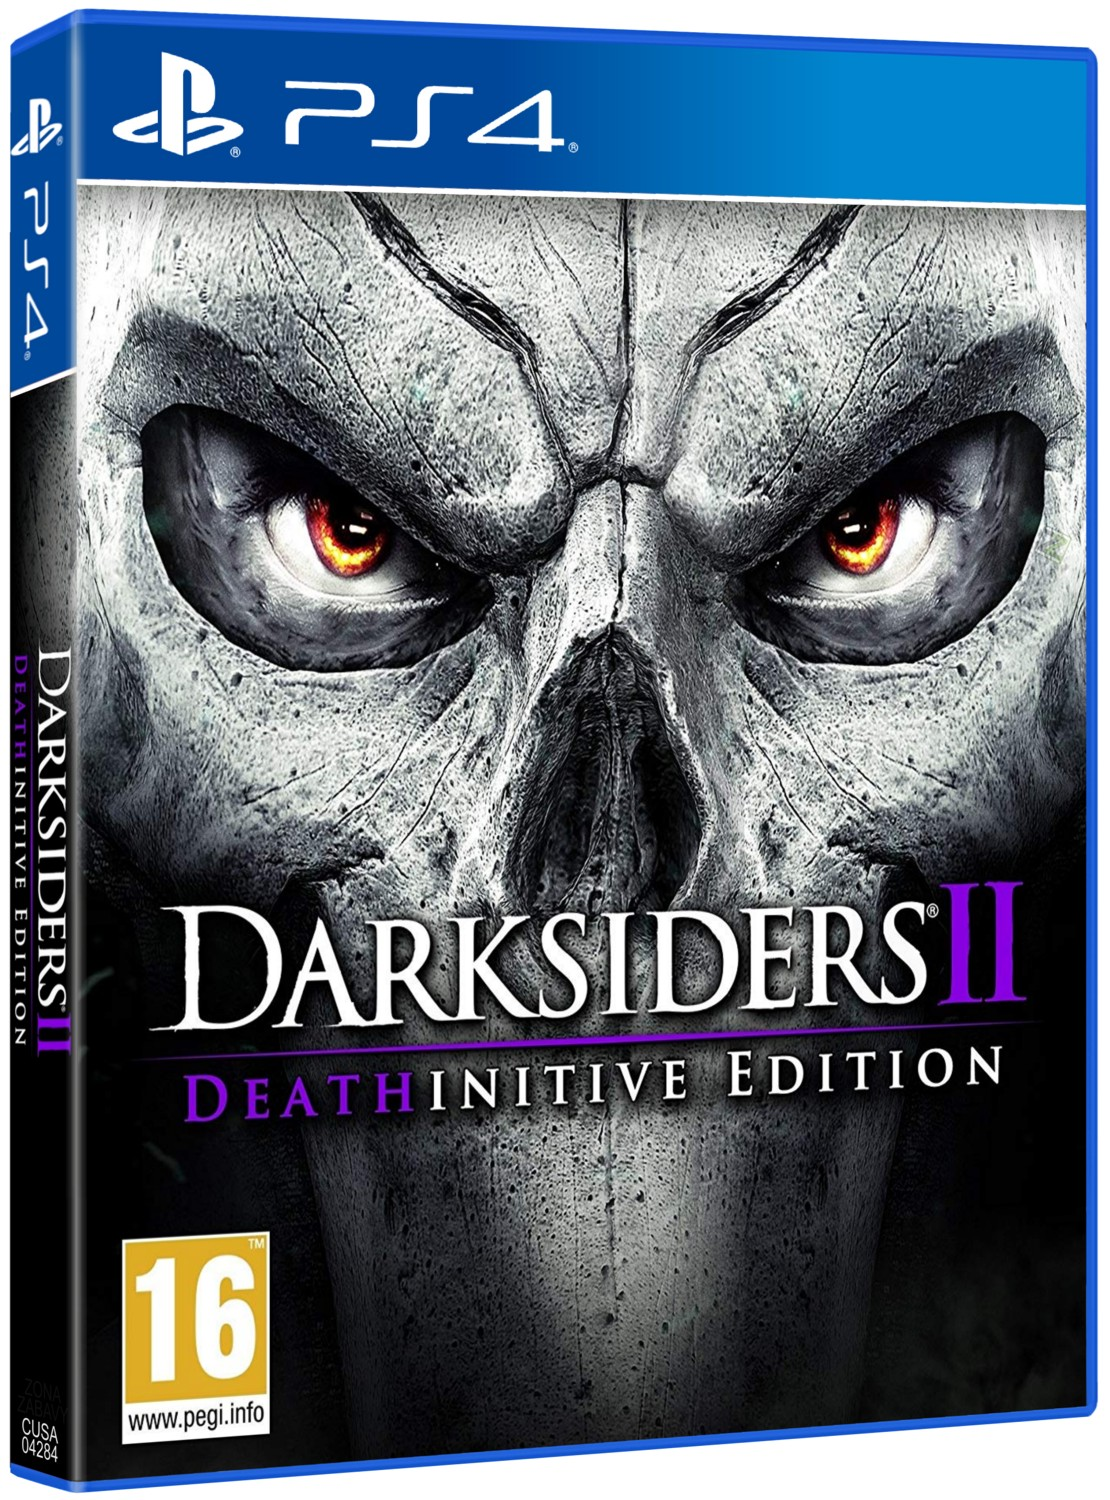 DARKSIDERS 2 DEFINITIVE EDITION - PS4